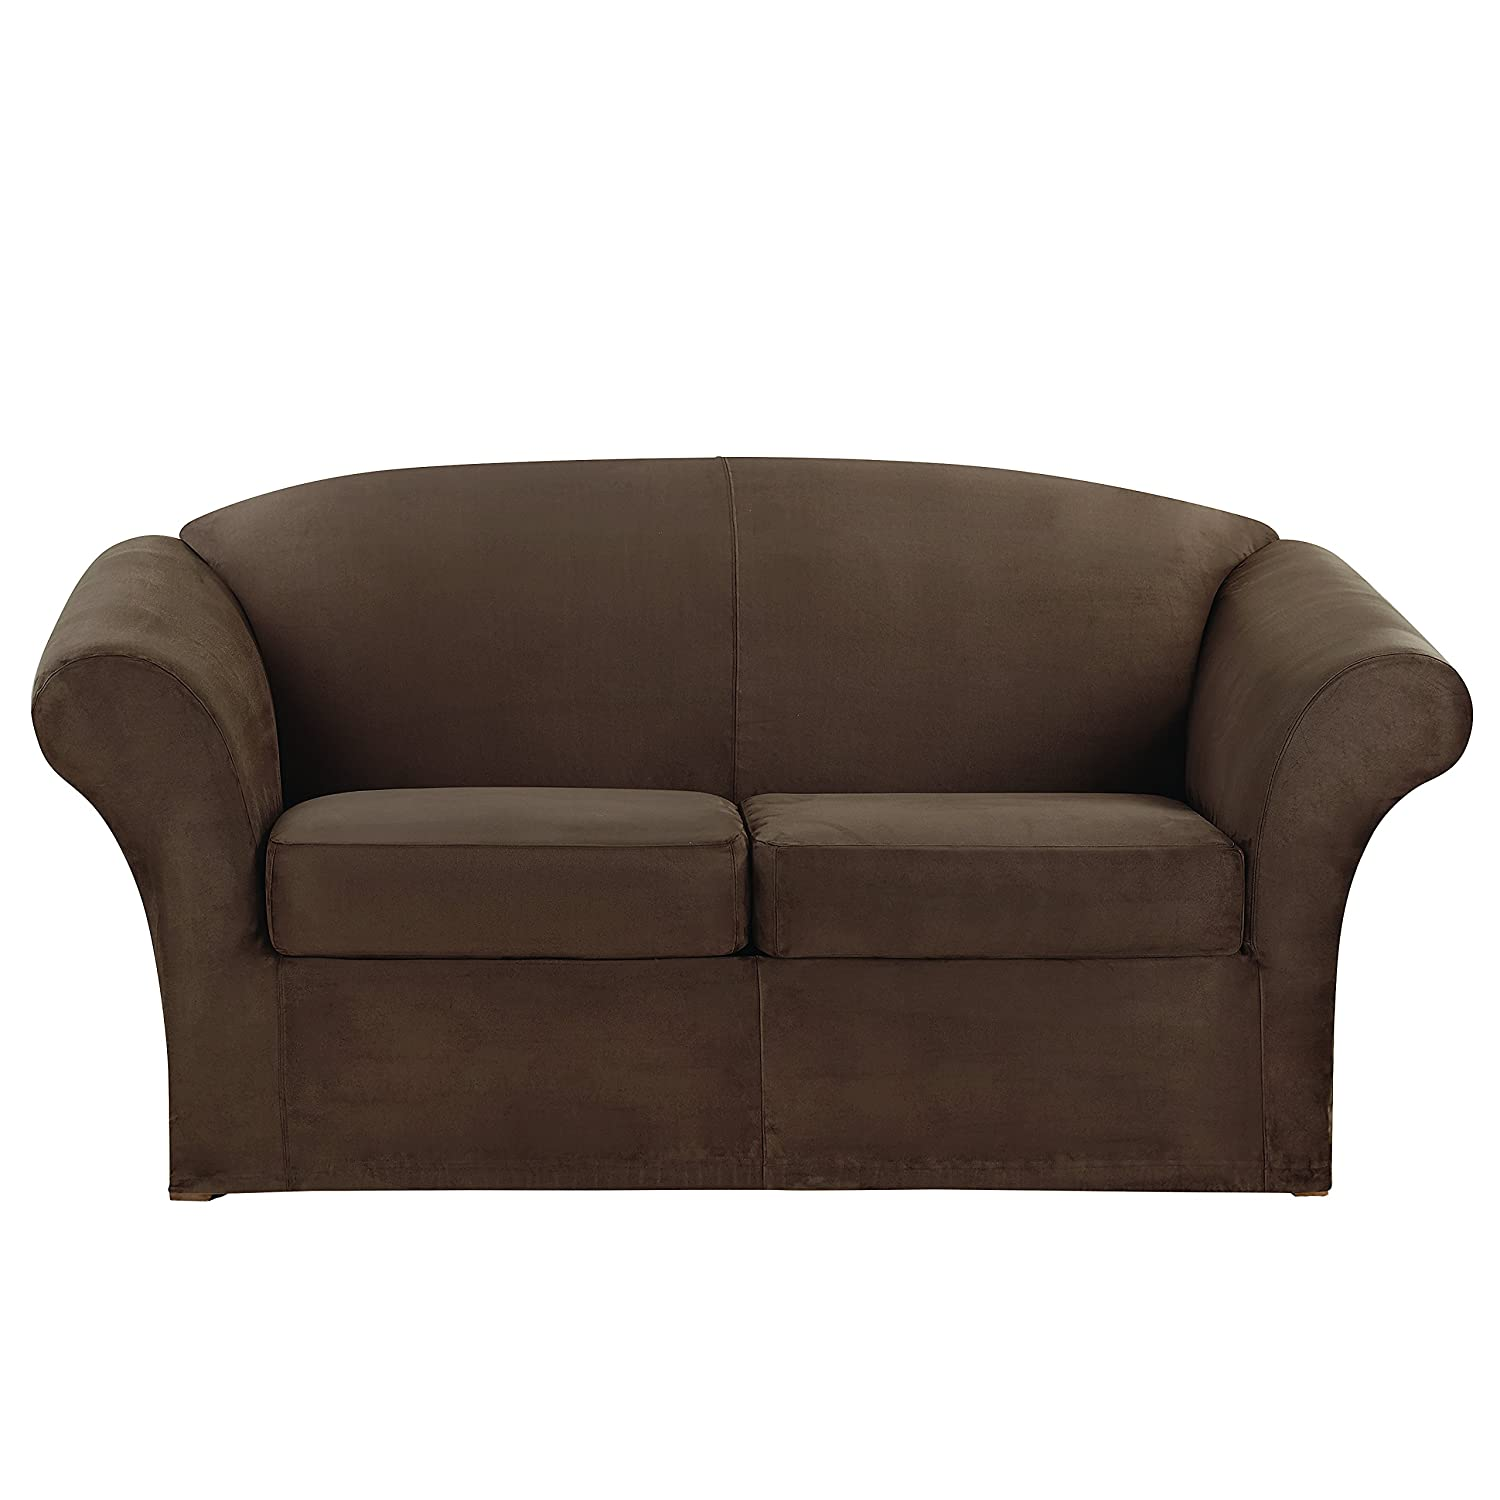 Amazon Sure Fit Stretch Suede Loveseat Slipcover